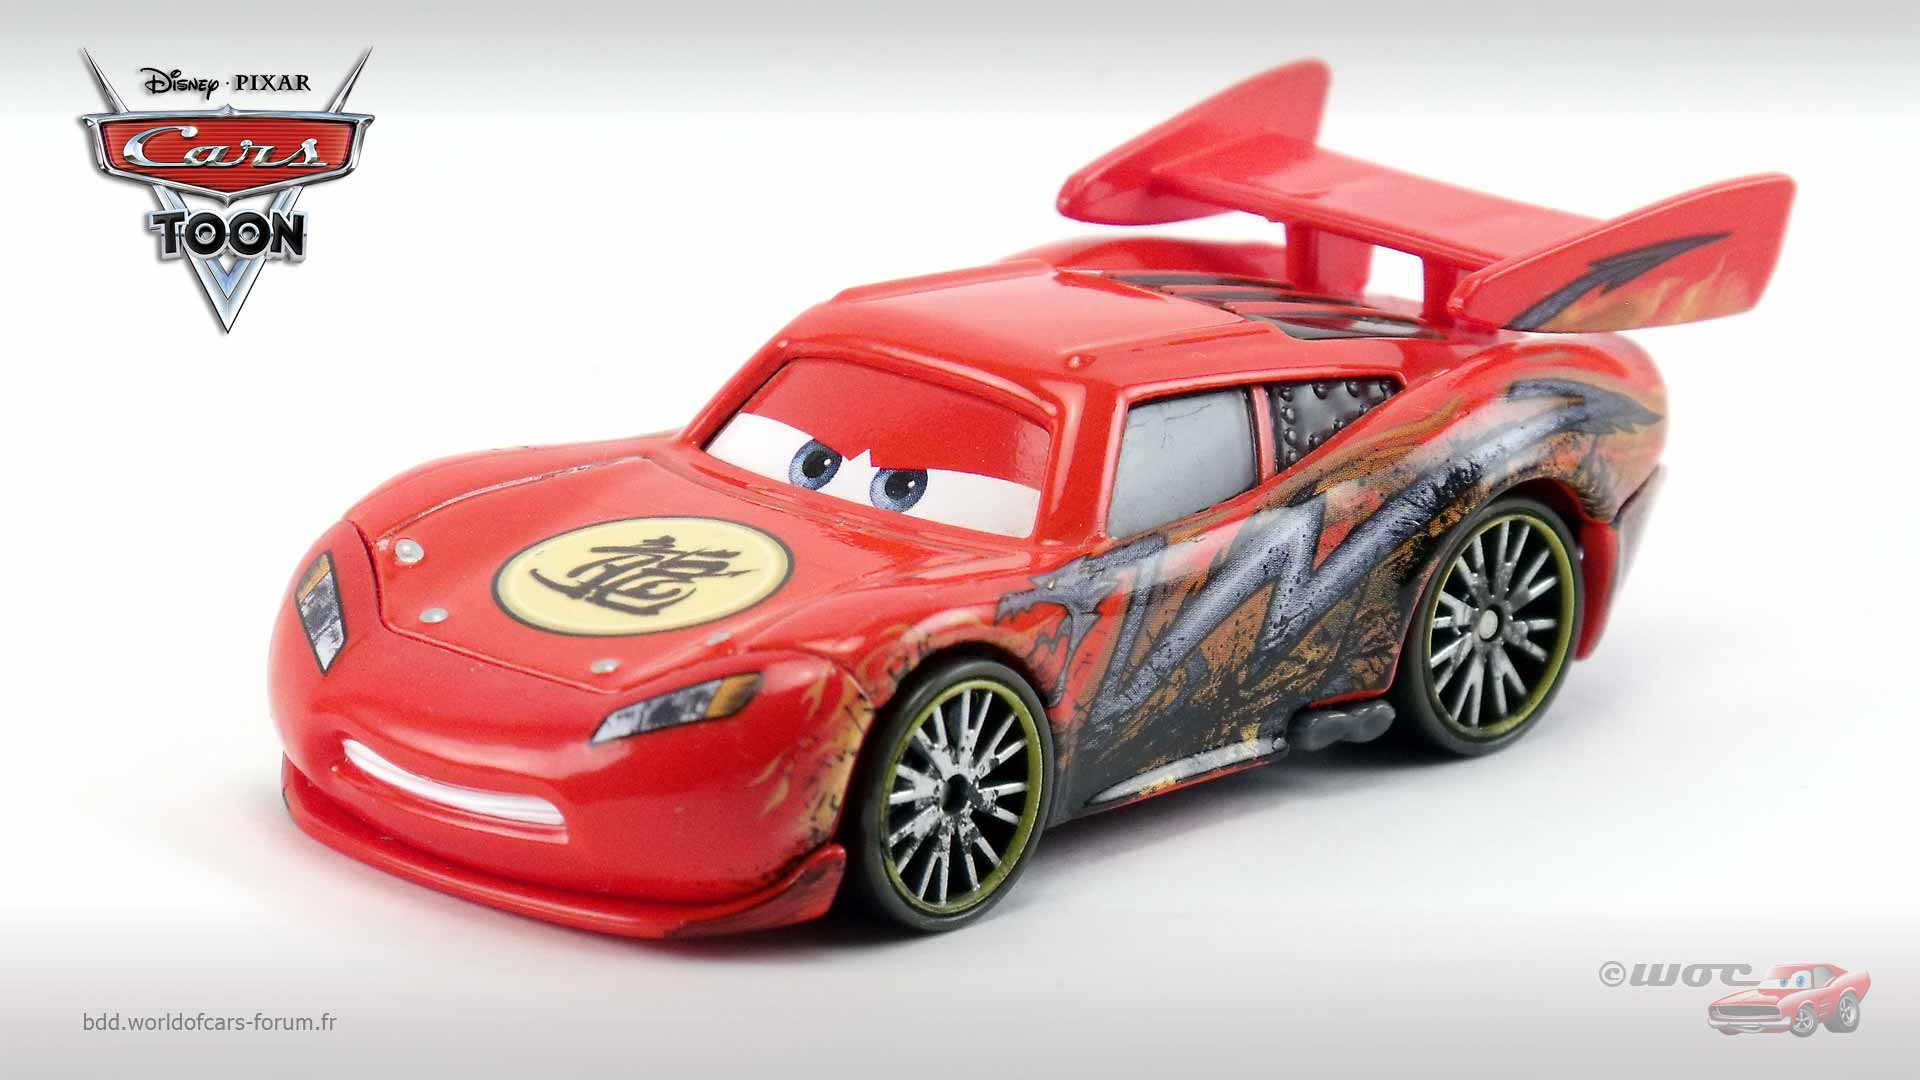 Dragon Lightning McQueen with Oil Stains